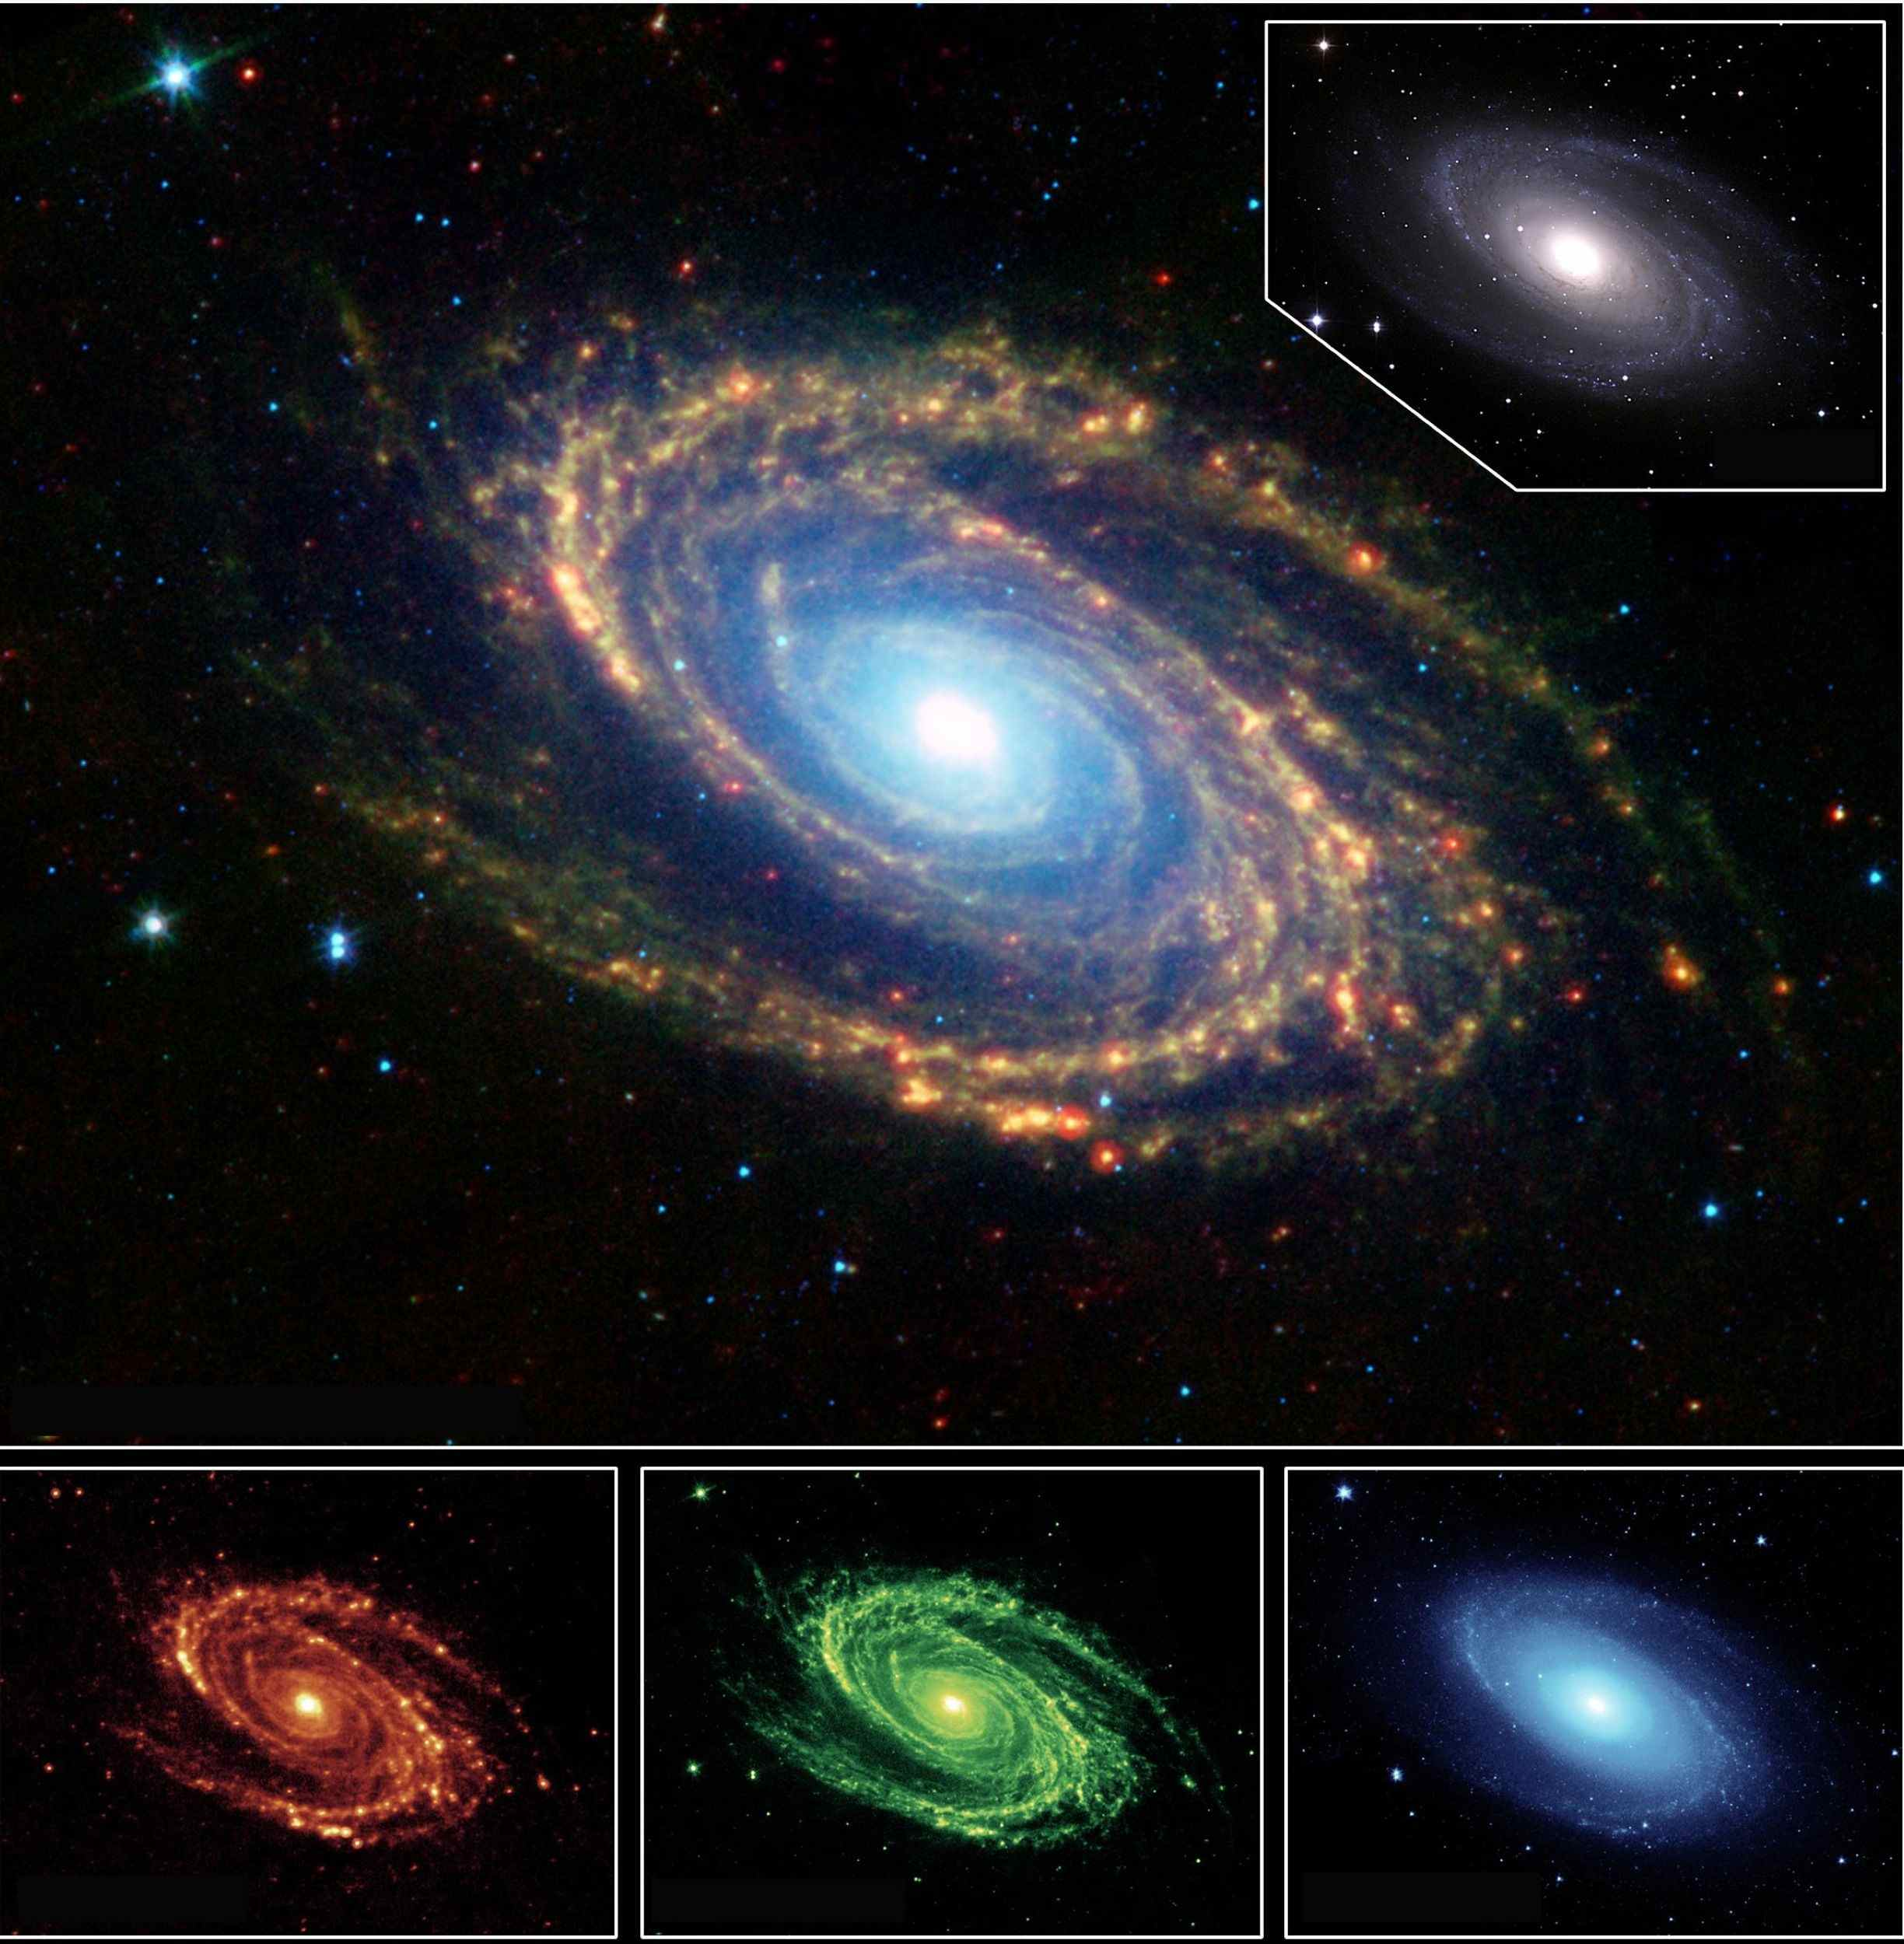 The magnificent spiral arms of the nearby galaxy Messier 81 are highlighted in this image from NASA's Spitzer Space Telescope.